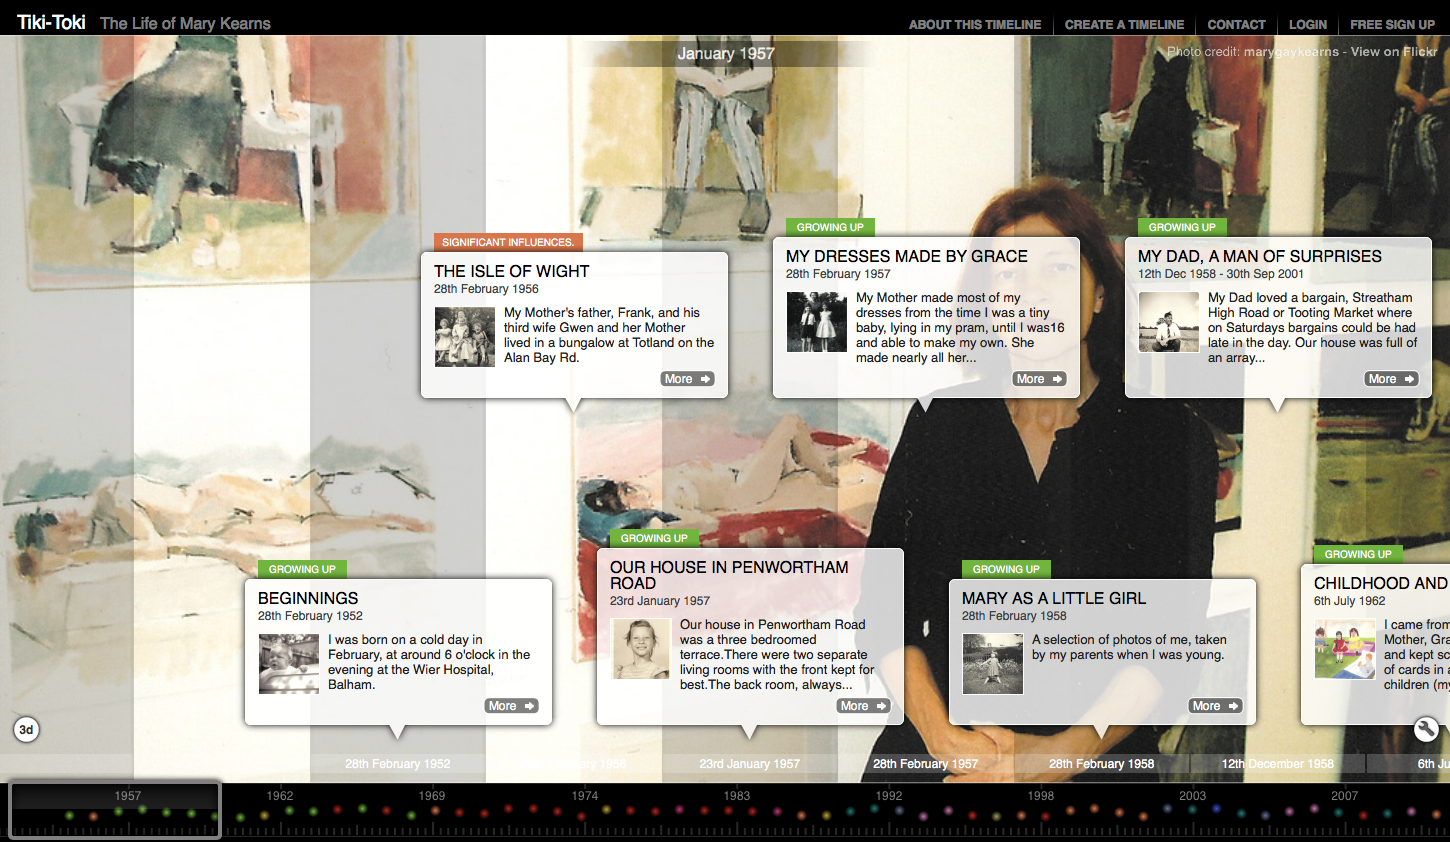 Screenshot of Tiki-Toki timeline. A background image of a woman sitting in front of paintings of people sitting is overlaid with white text blocks arranged in a timeline left to right.